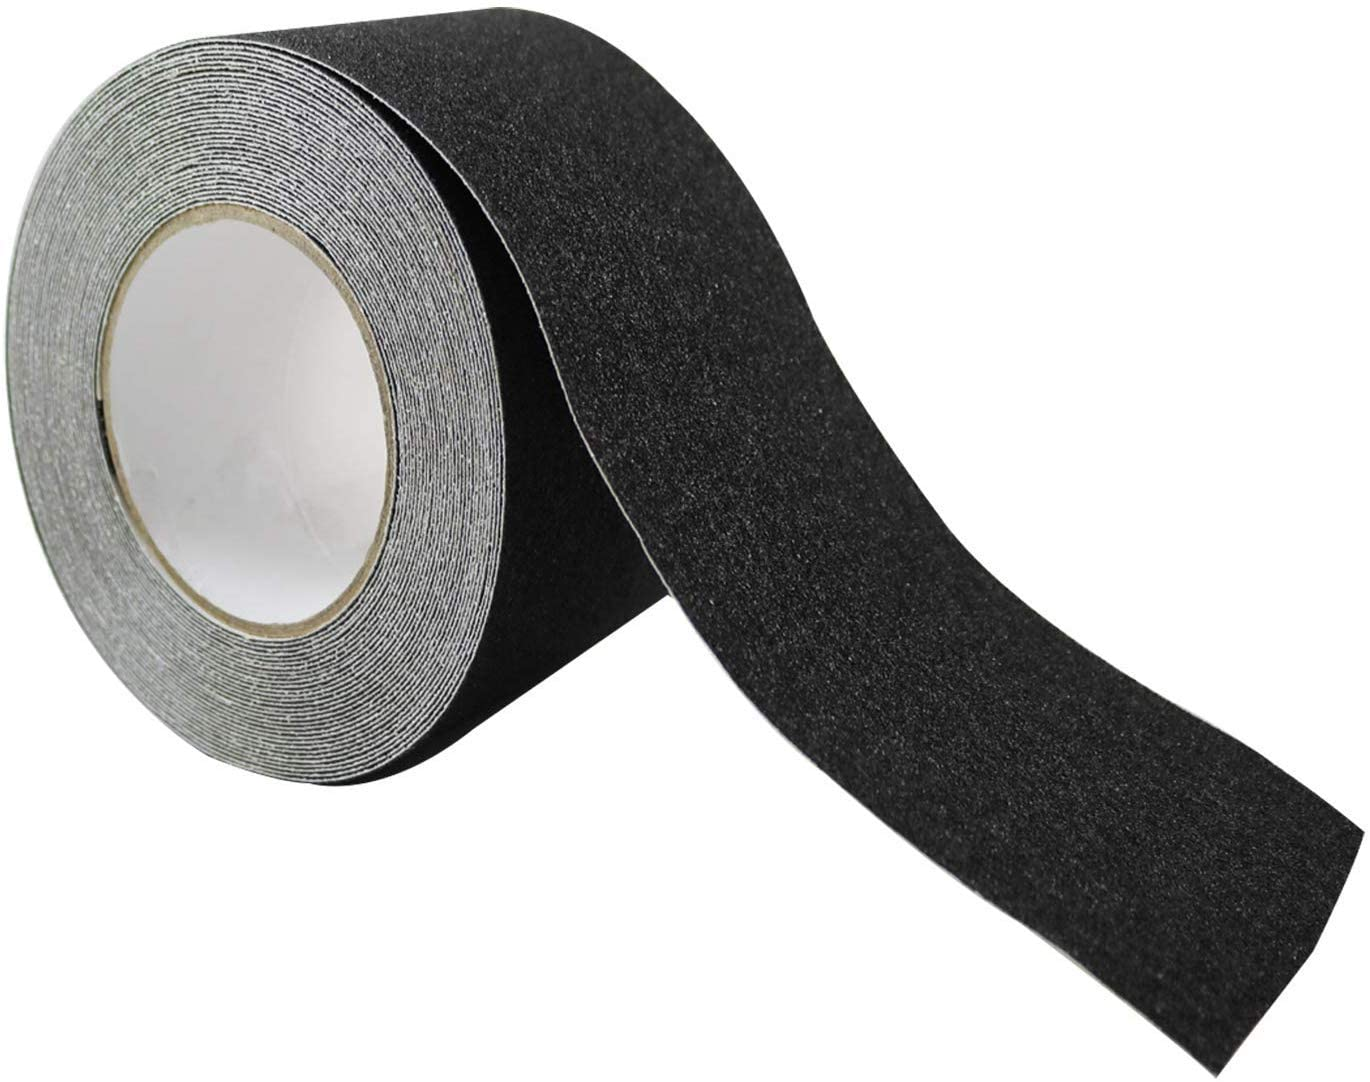 Roar Black Anti Slip Traction Tape 4Inch x 33 Foot, Durable Grip Grit, Non Slip, Abrasive Adhesive for Stairs, Indoor Outdoor Use for Stairs, Kid Safety, Slip Ground